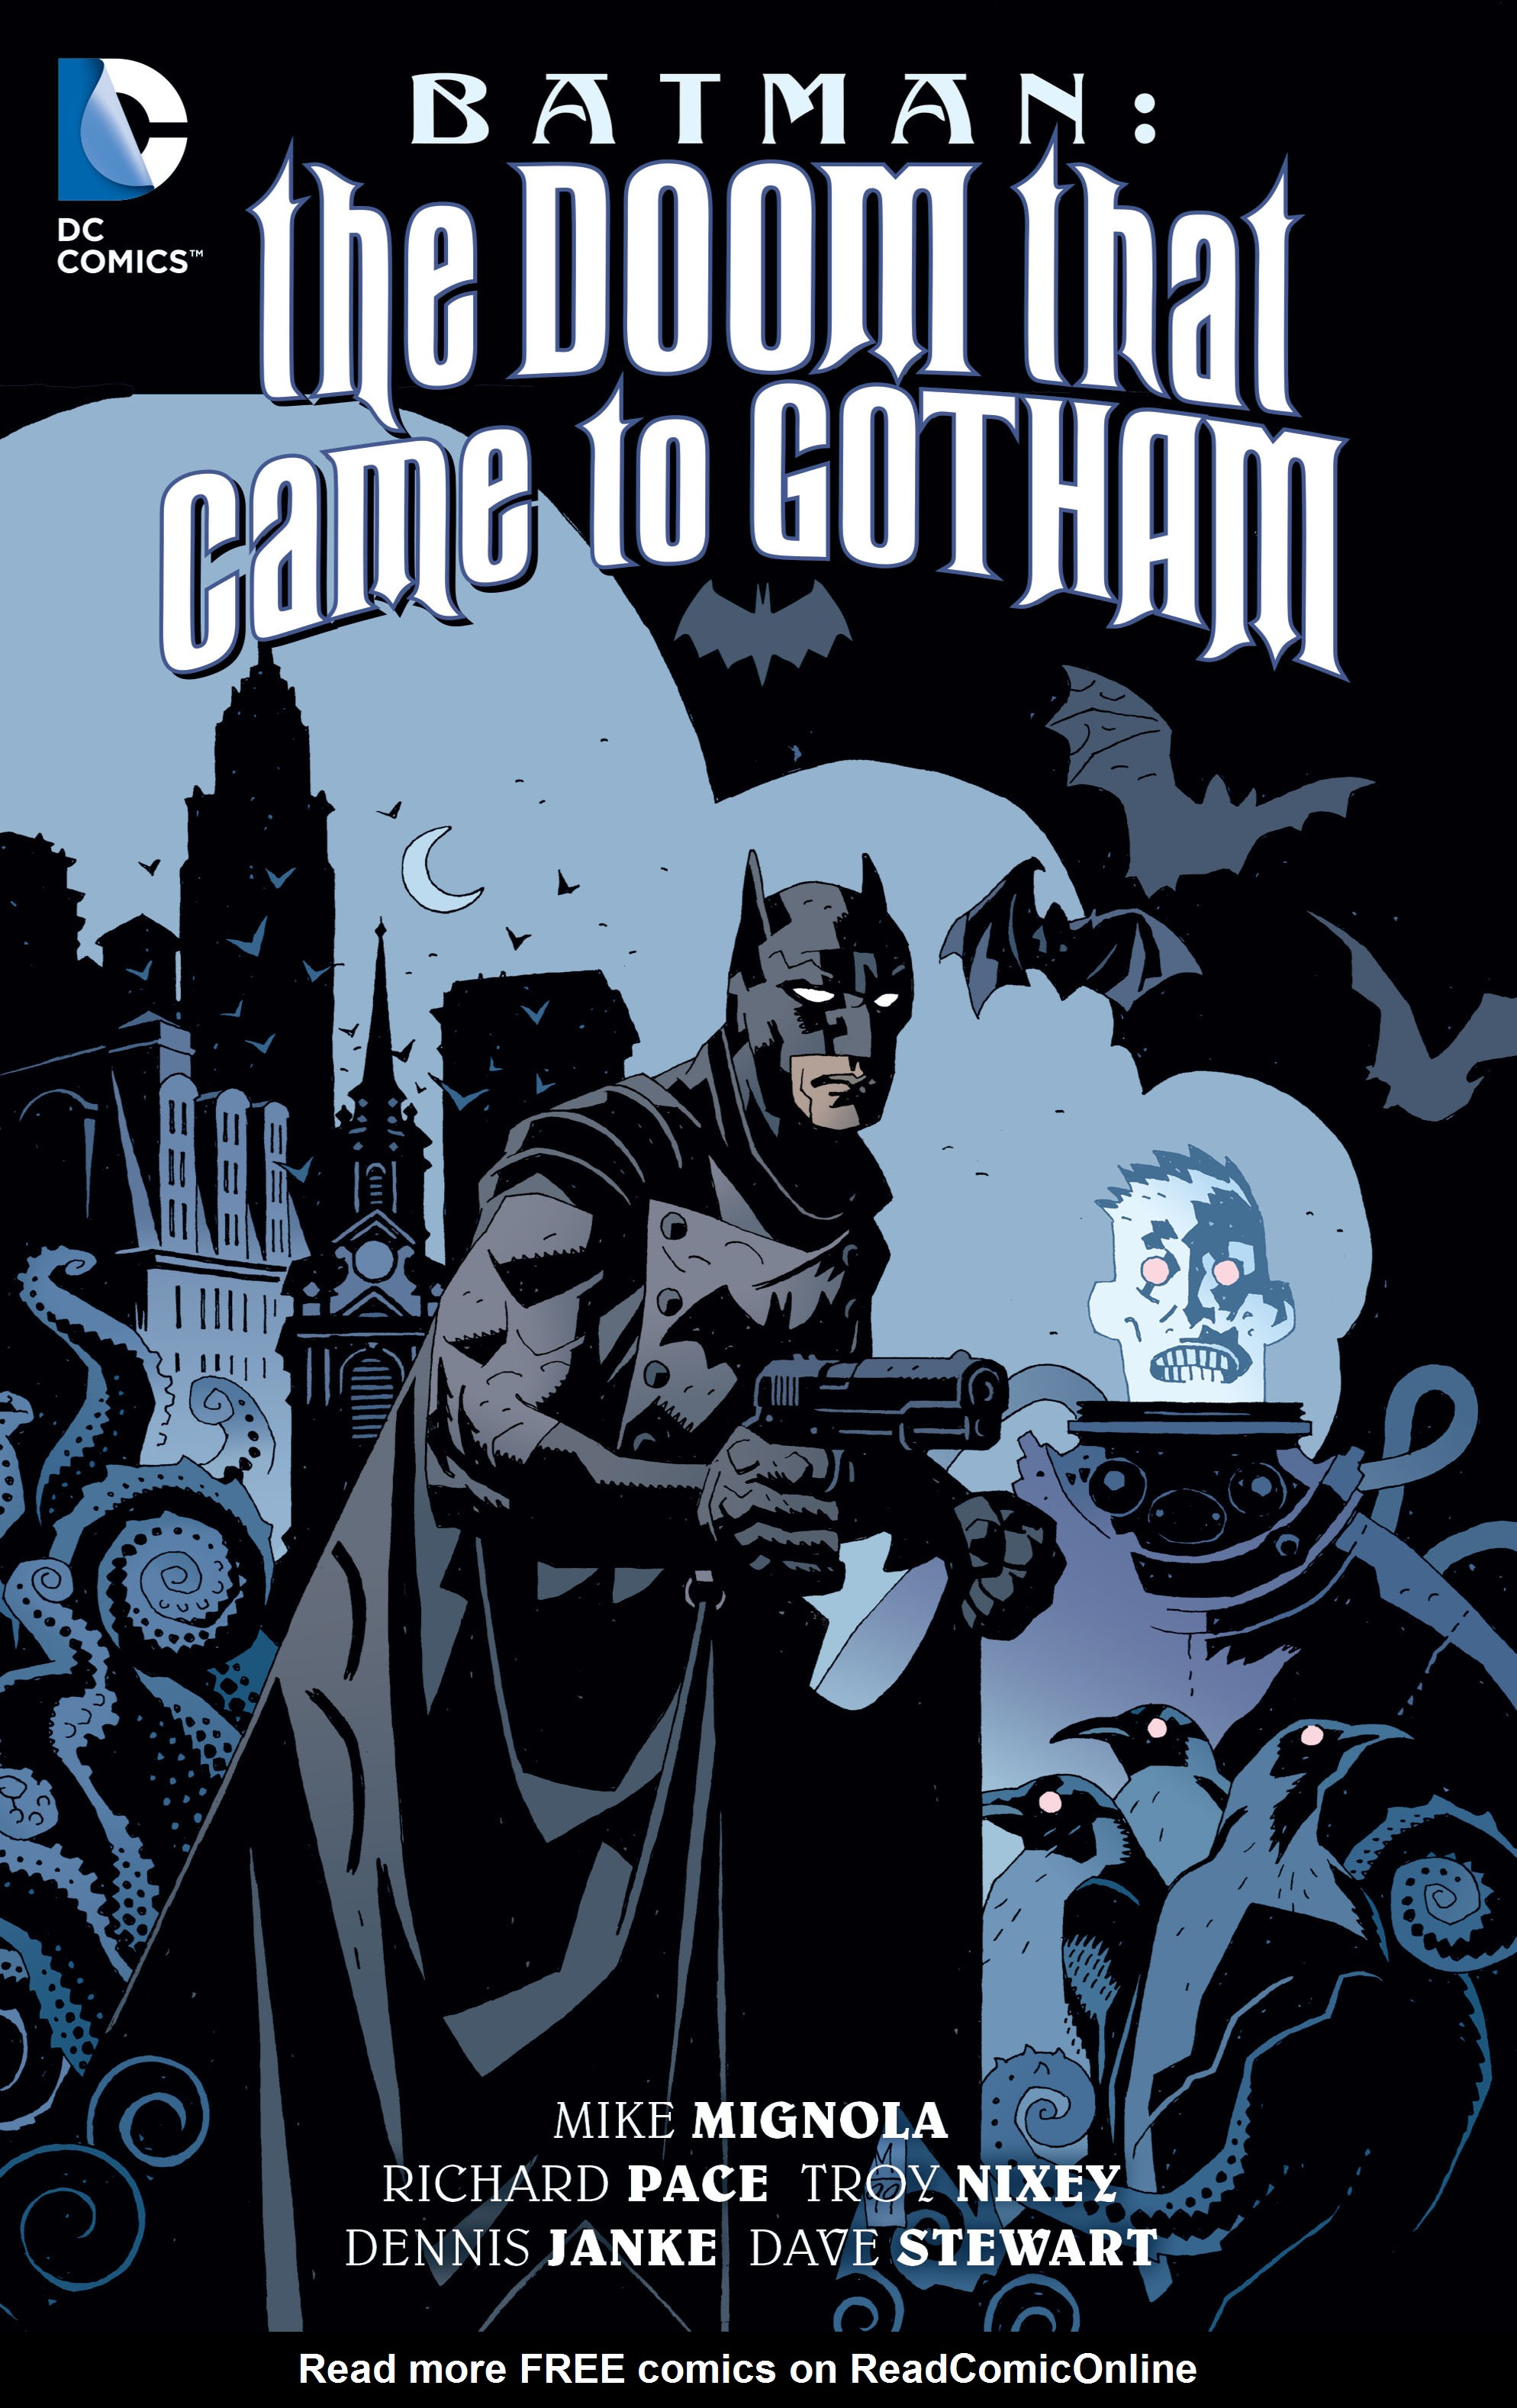 Batman: The Doom That Came to Gotham Full Page 1